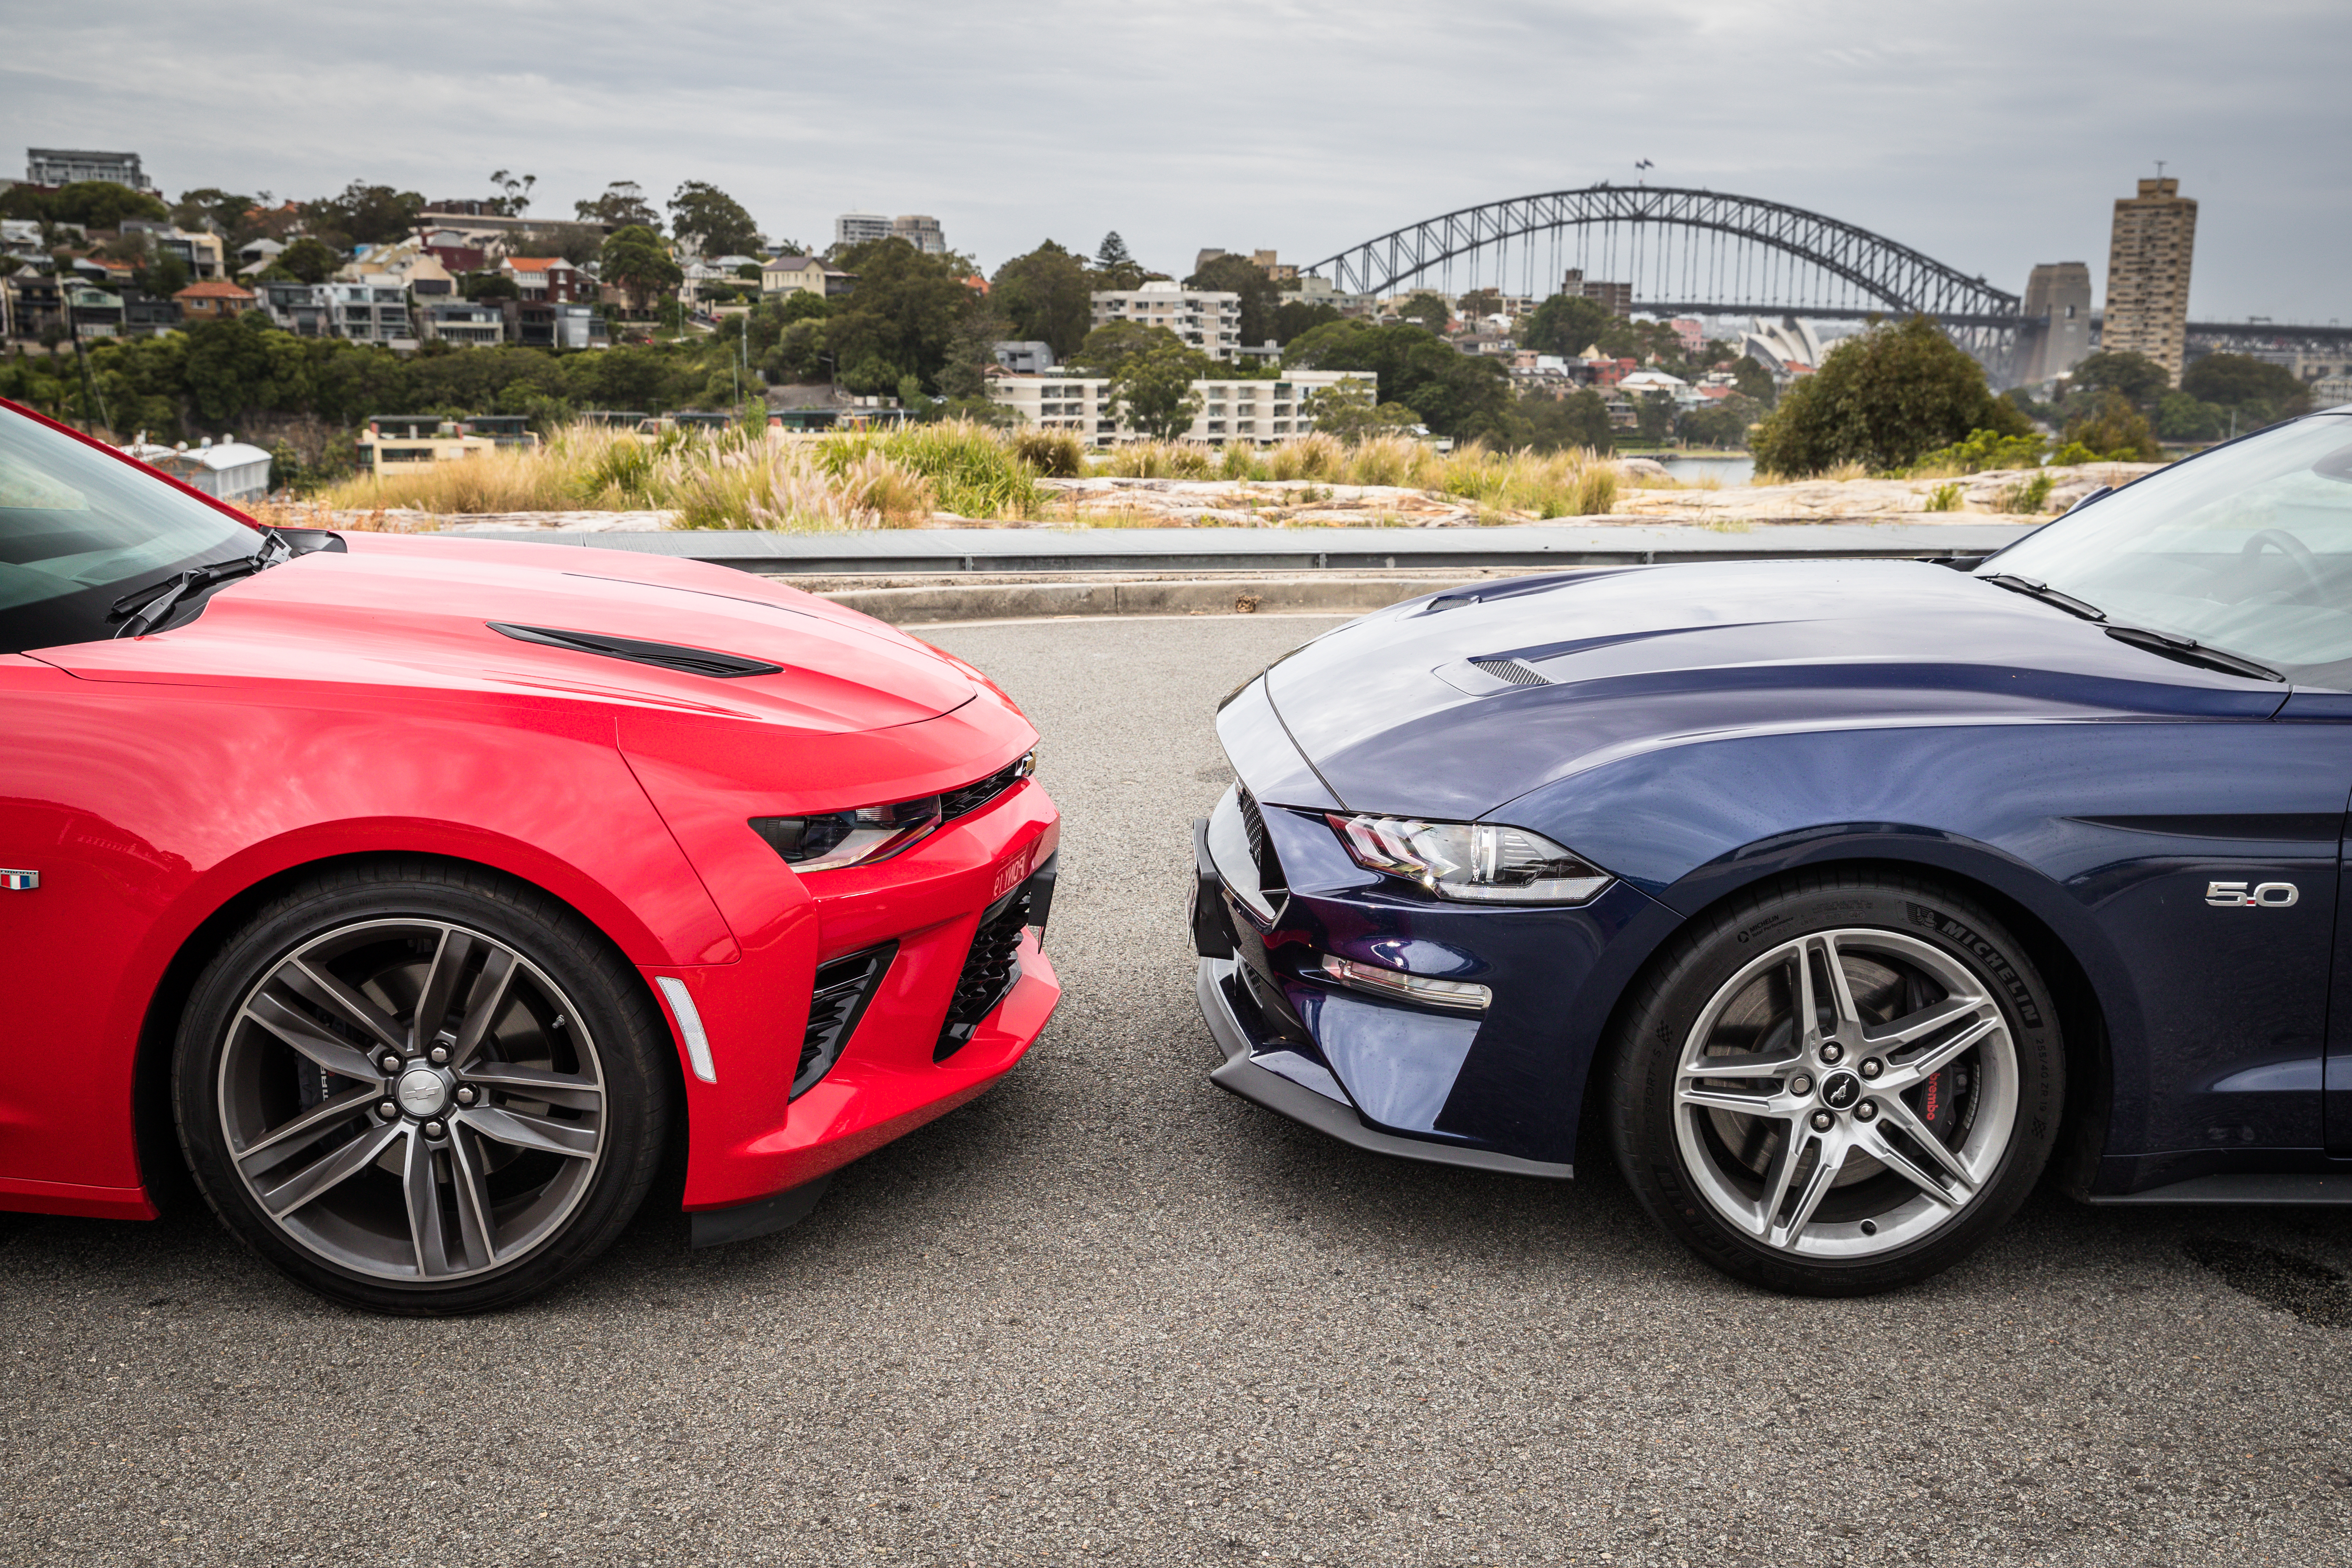 2019 Ford Mustang Gt V Chevrolet Camaro 2ss Comparison Caradvice